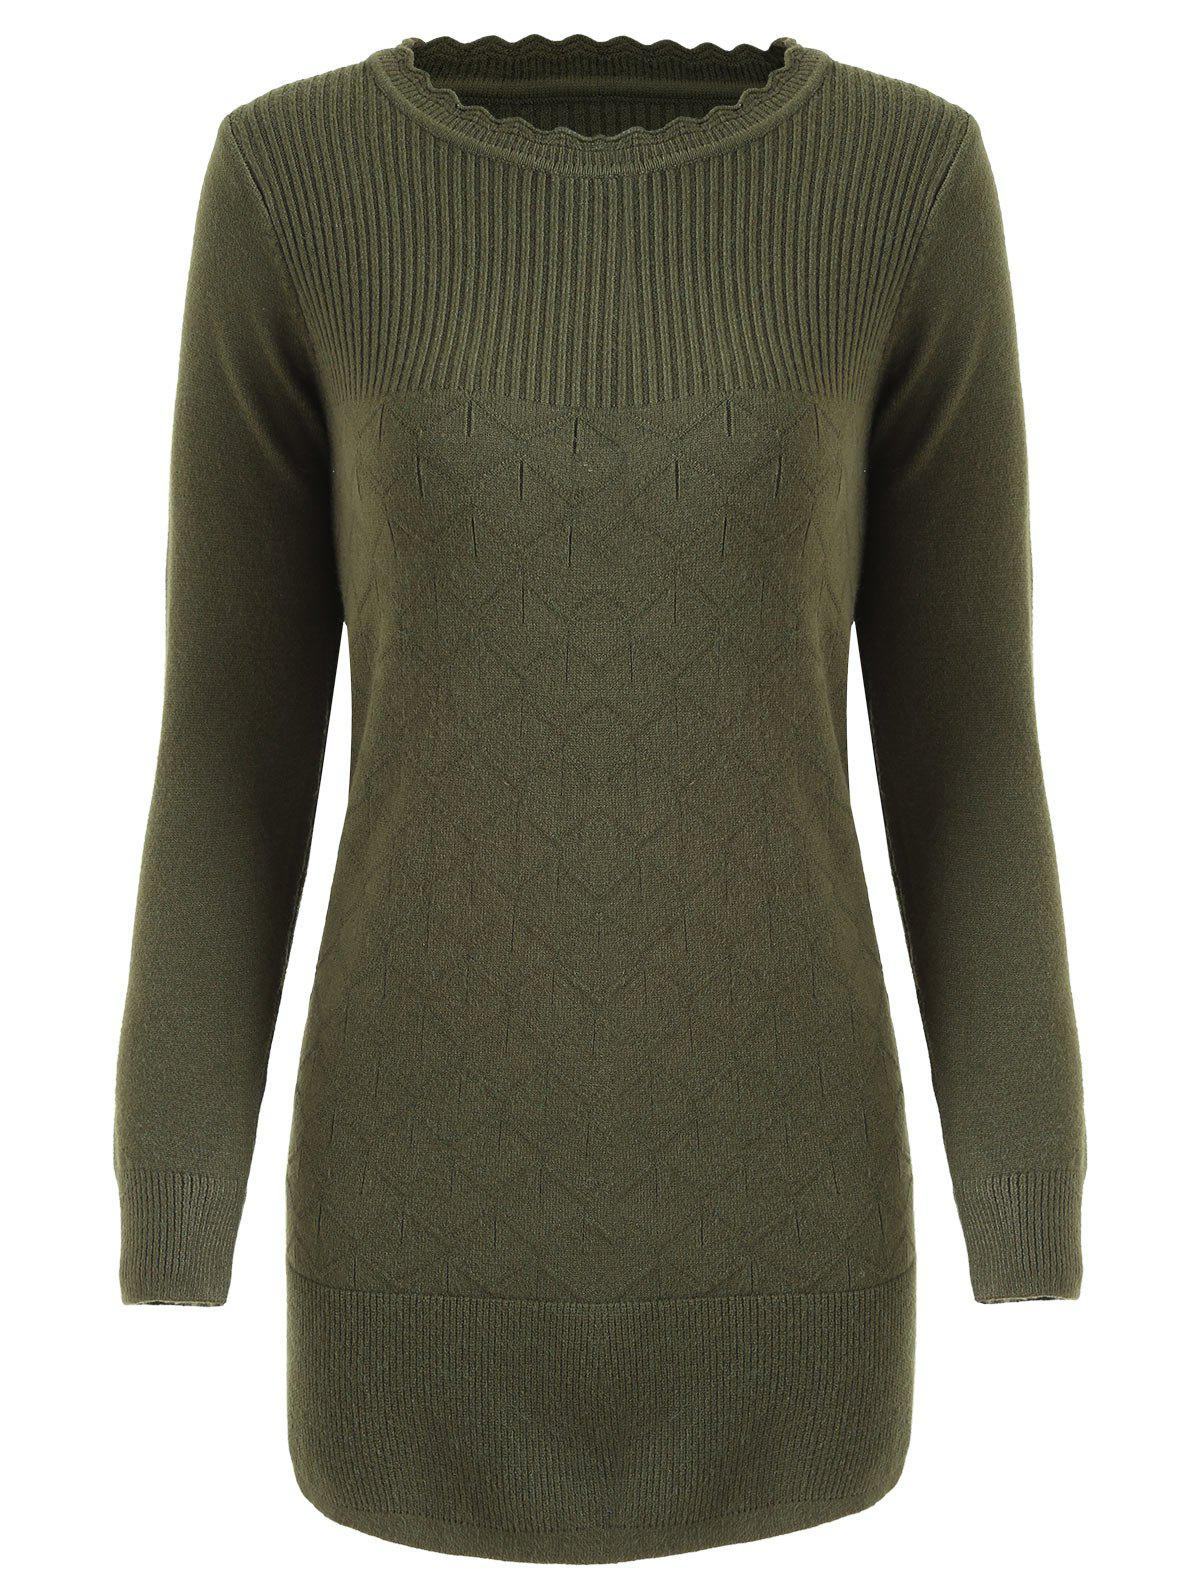 Ribbed Crew Neck Knitwear 233789802